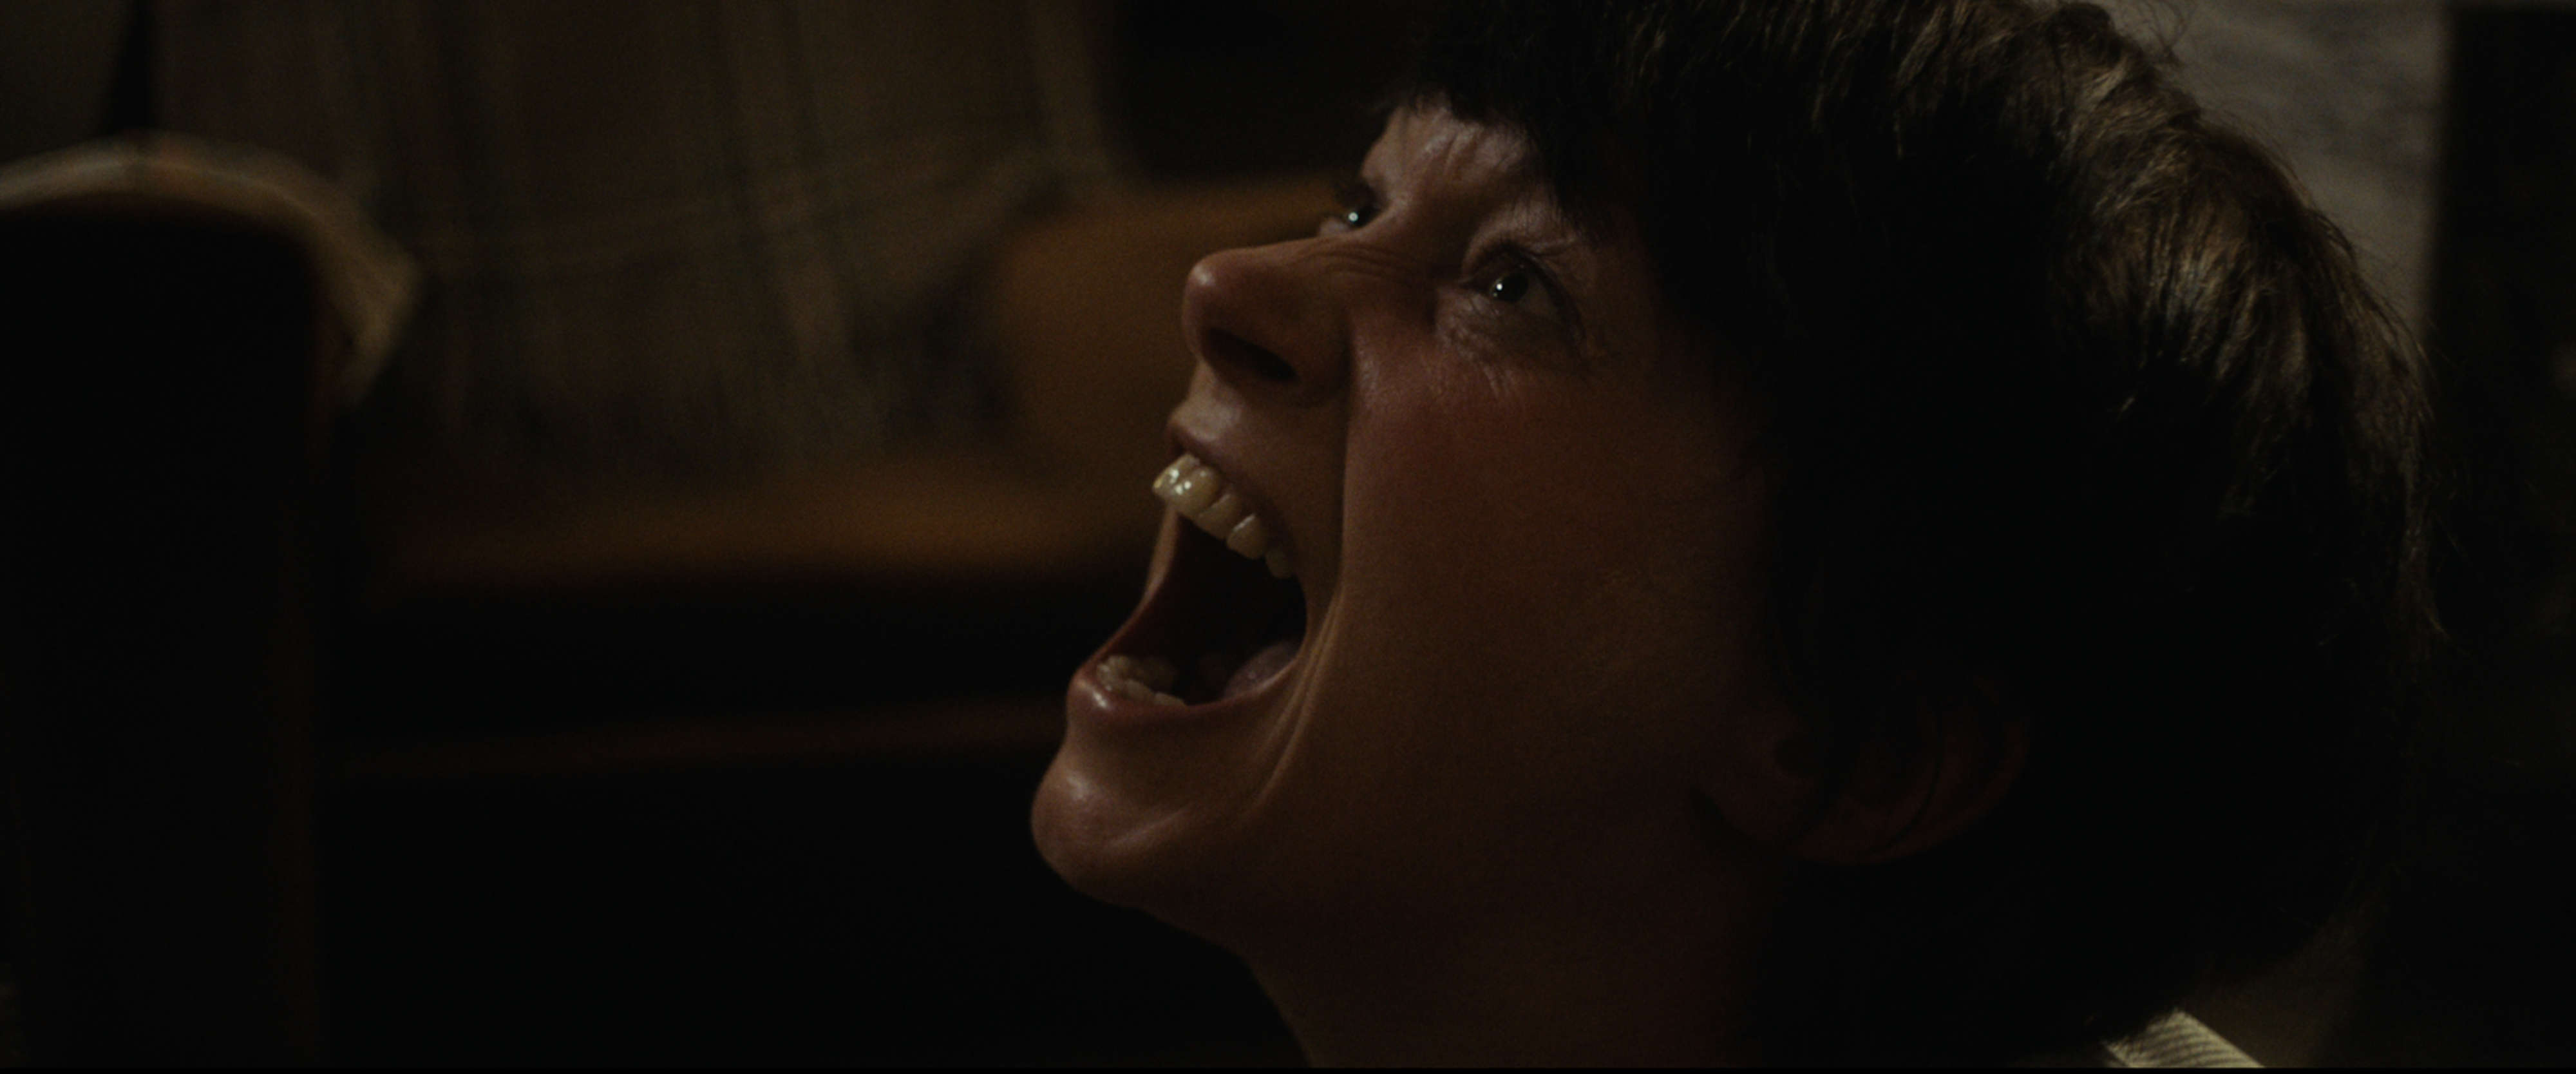 A close-up of Hazel Doupe screaming in a dark room.